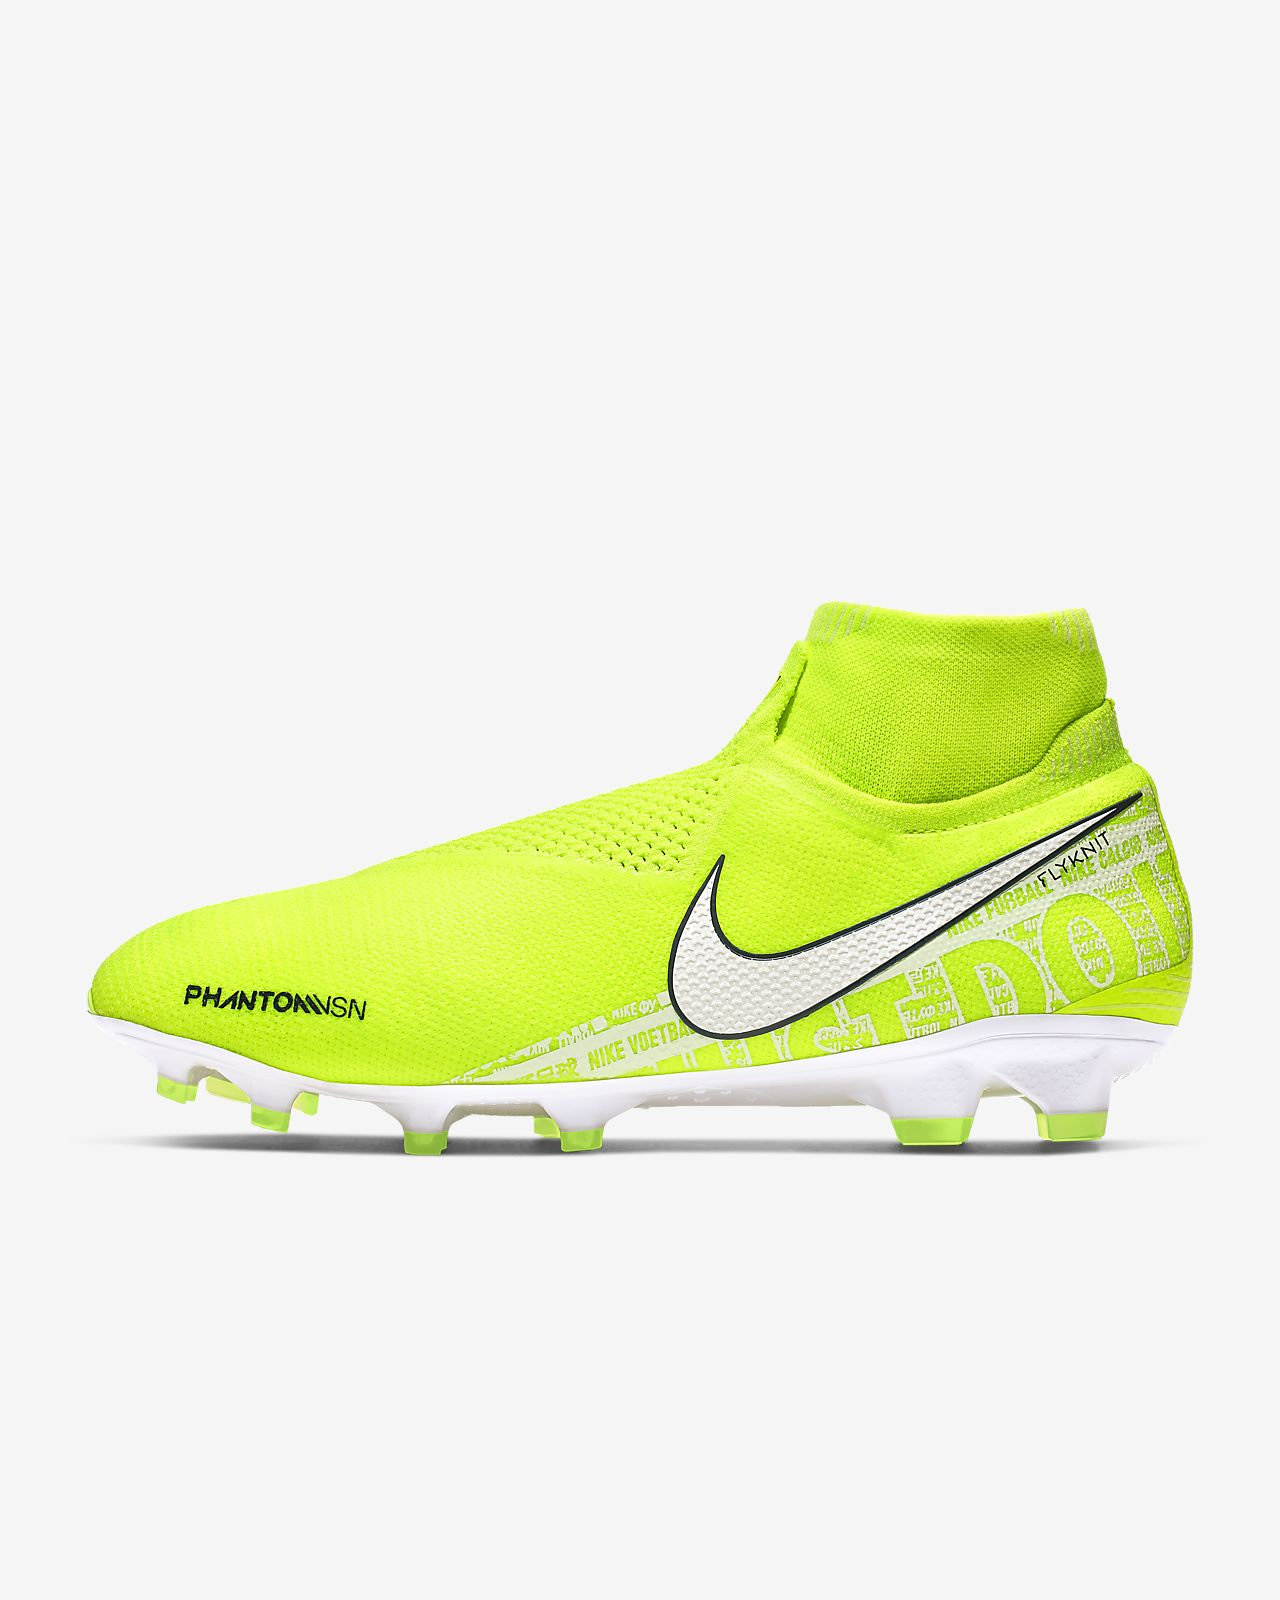 Scarpa da calcio per terreni duri Nike Phantom Vision Elite Dynamic Fit FG